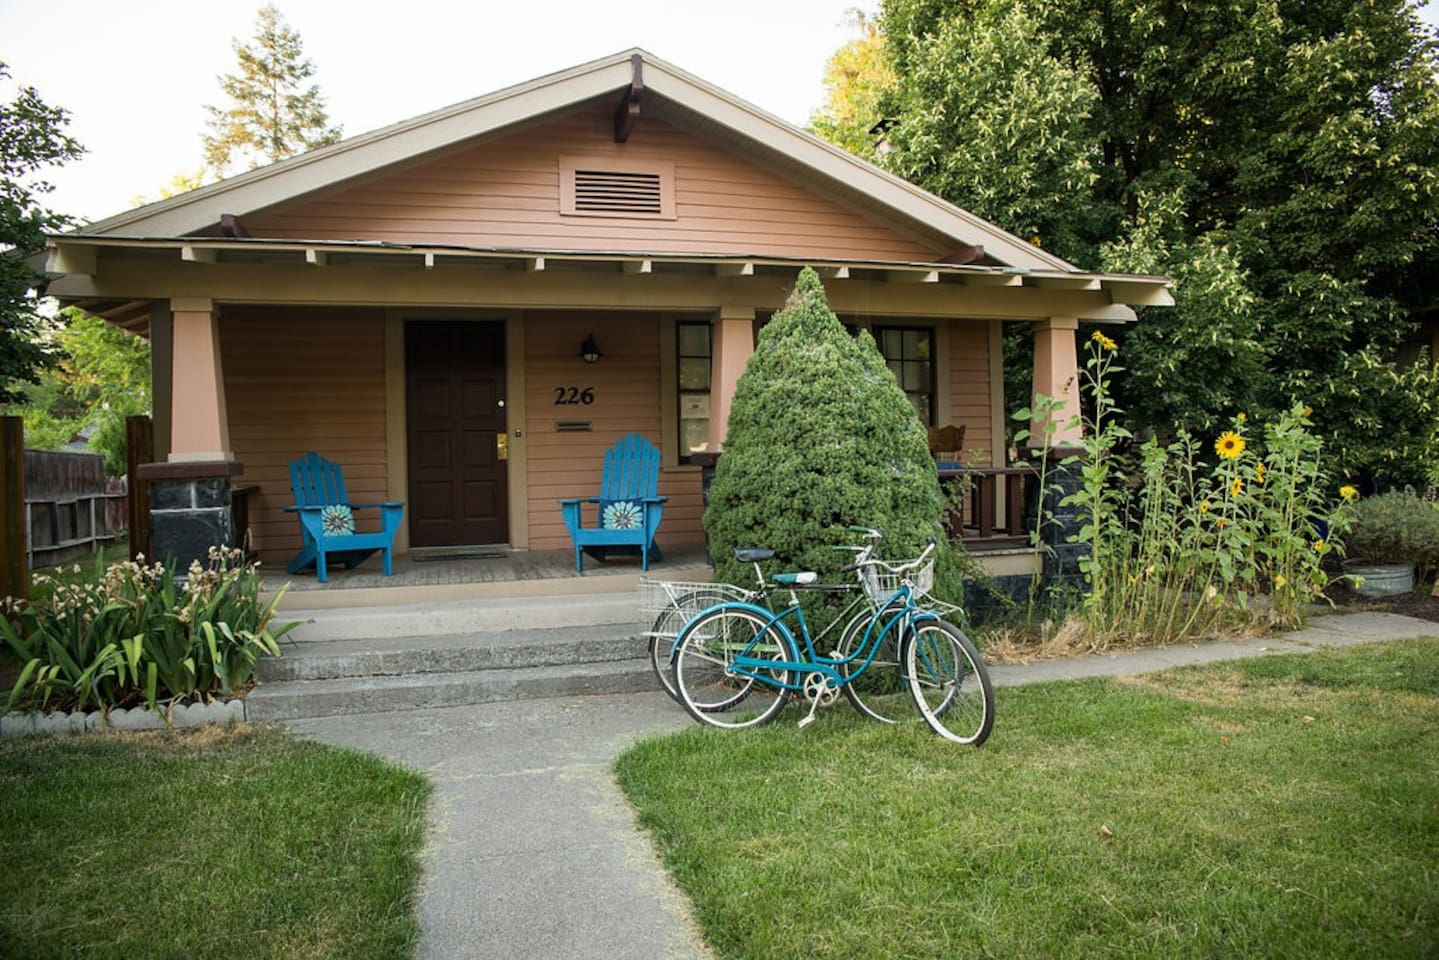 Welcome to the Historic Cozy Craftsman! We would love to share our home with you while you explore Bend.